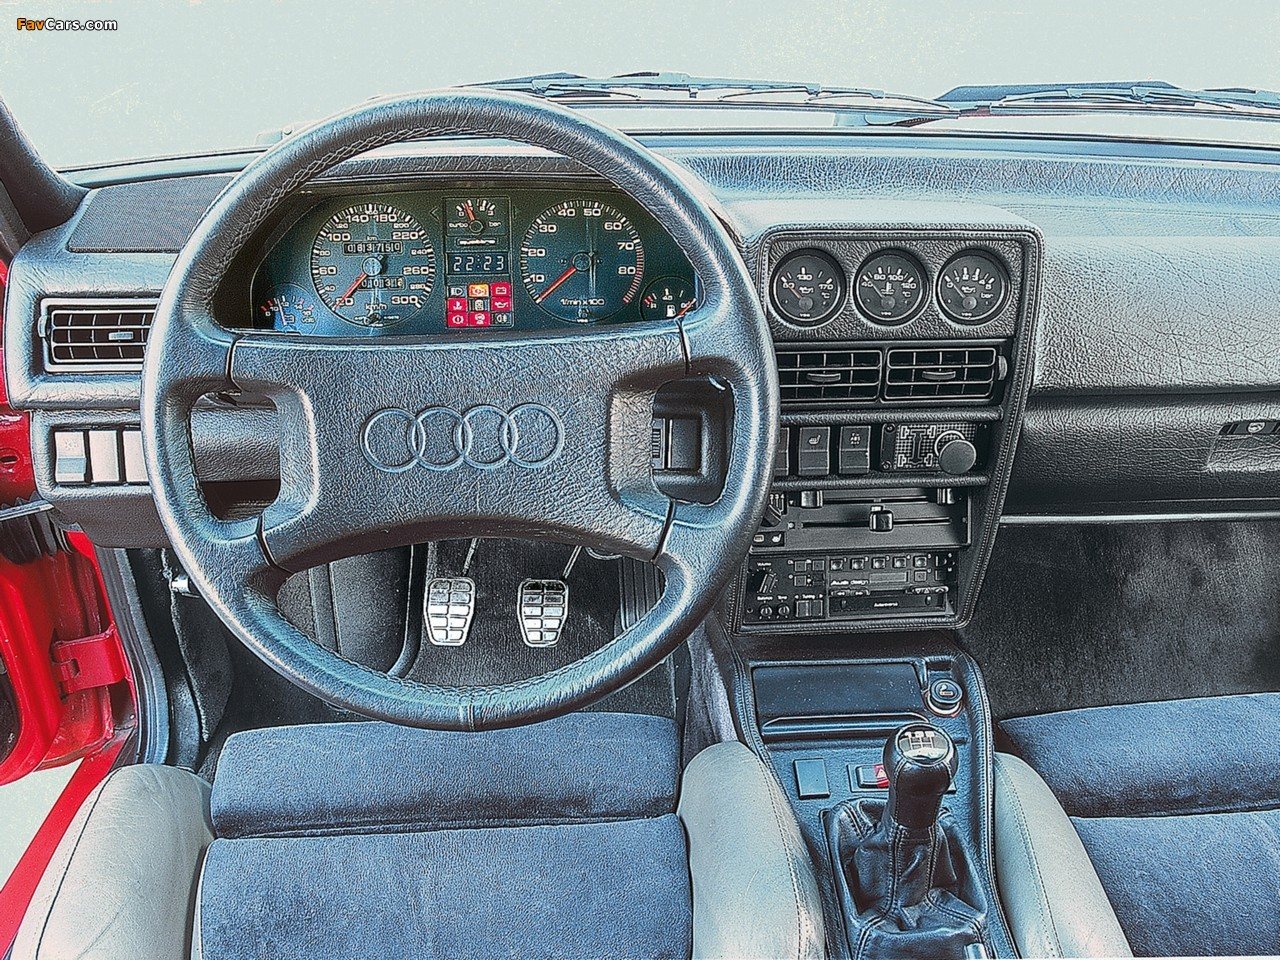 51 (1) conveniently and audi quattro all-wheel-drive schoolroom